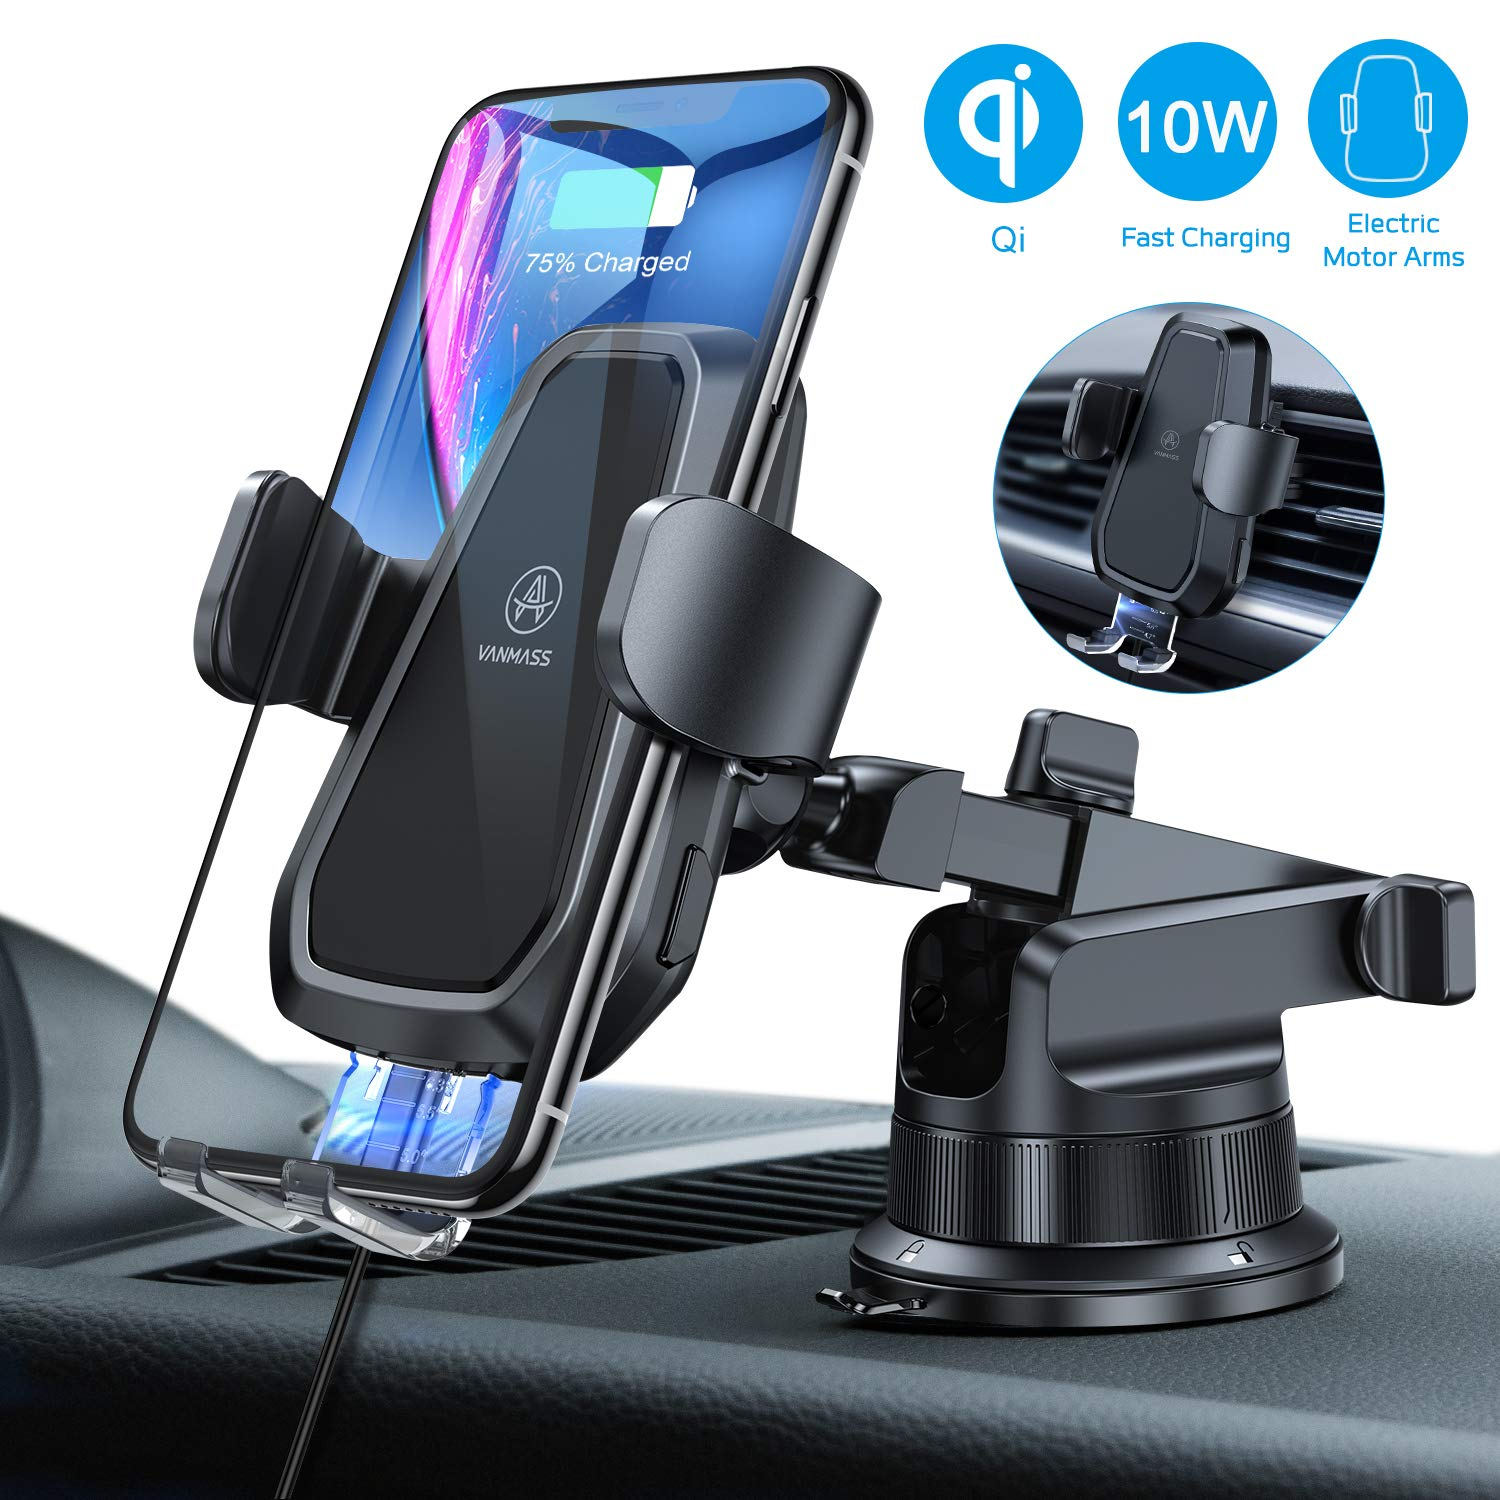 VANMASS Wireless Car Charger Mount, Automatic Clamping Qi 10W 7.5W Fast Charging Car Mount, Windshield Dashboard Air Vent Phone Holder Compatible with iPhone 11 Pro Max Xs X 8,Samsung S10 Note10,Black by VANMASS